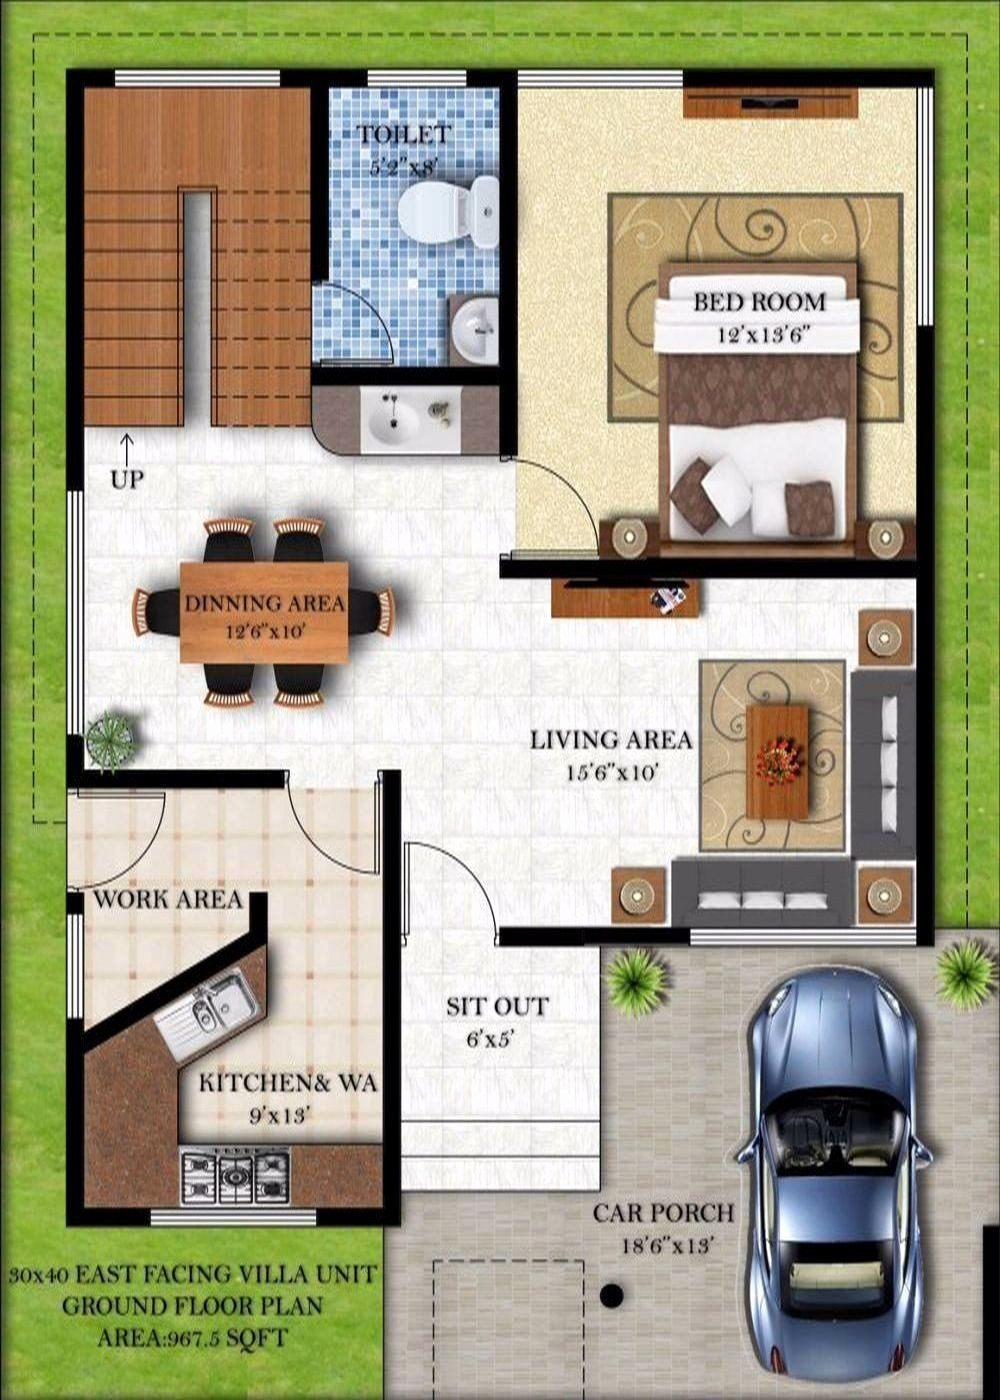 24x25 Ft Simple And Best House Plan House Plans Simple House Plans How To Plan